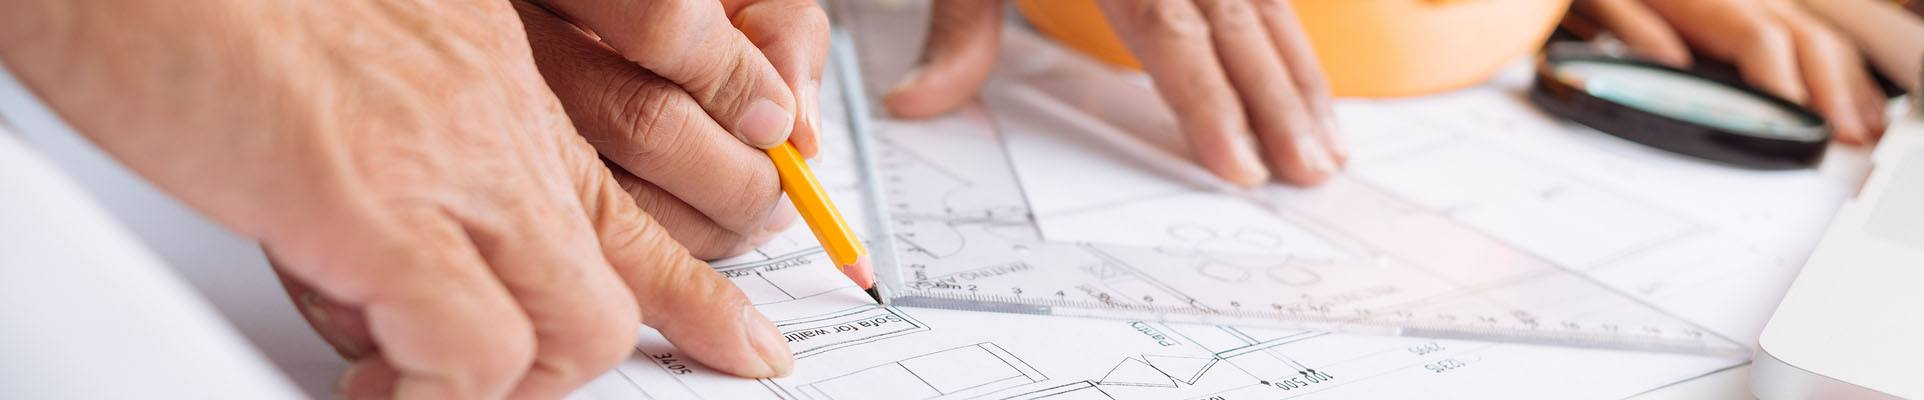 Projects that Need Planning Permission